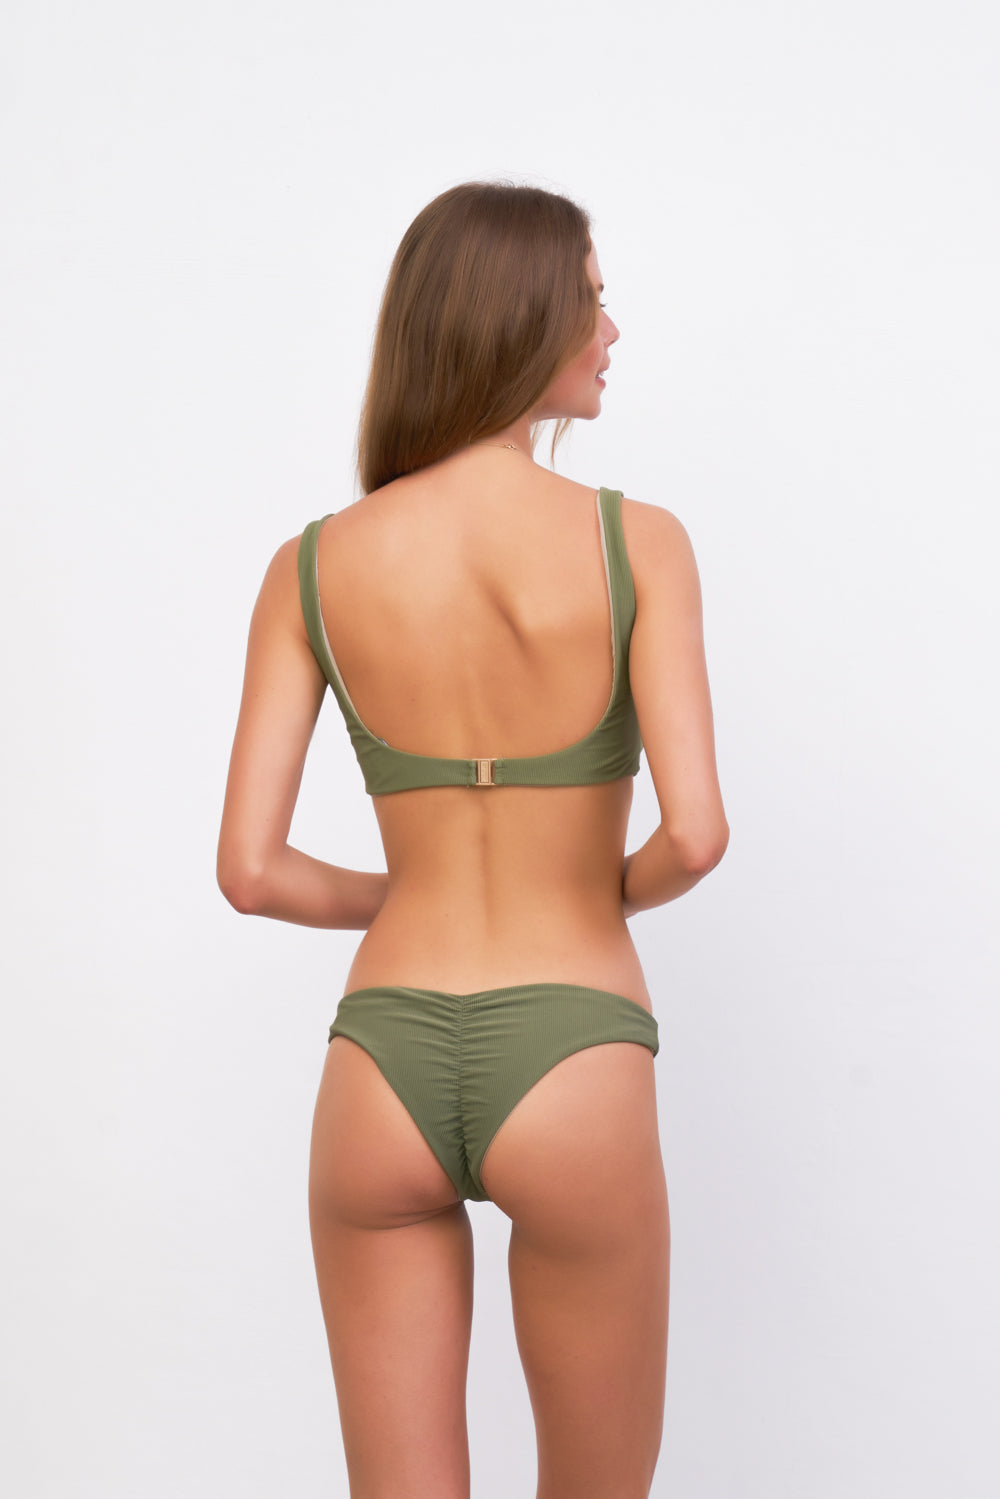 Storm Swimwear - Aruba - Centre Back Ruche Bikini Bottom in Jungle Corduroy